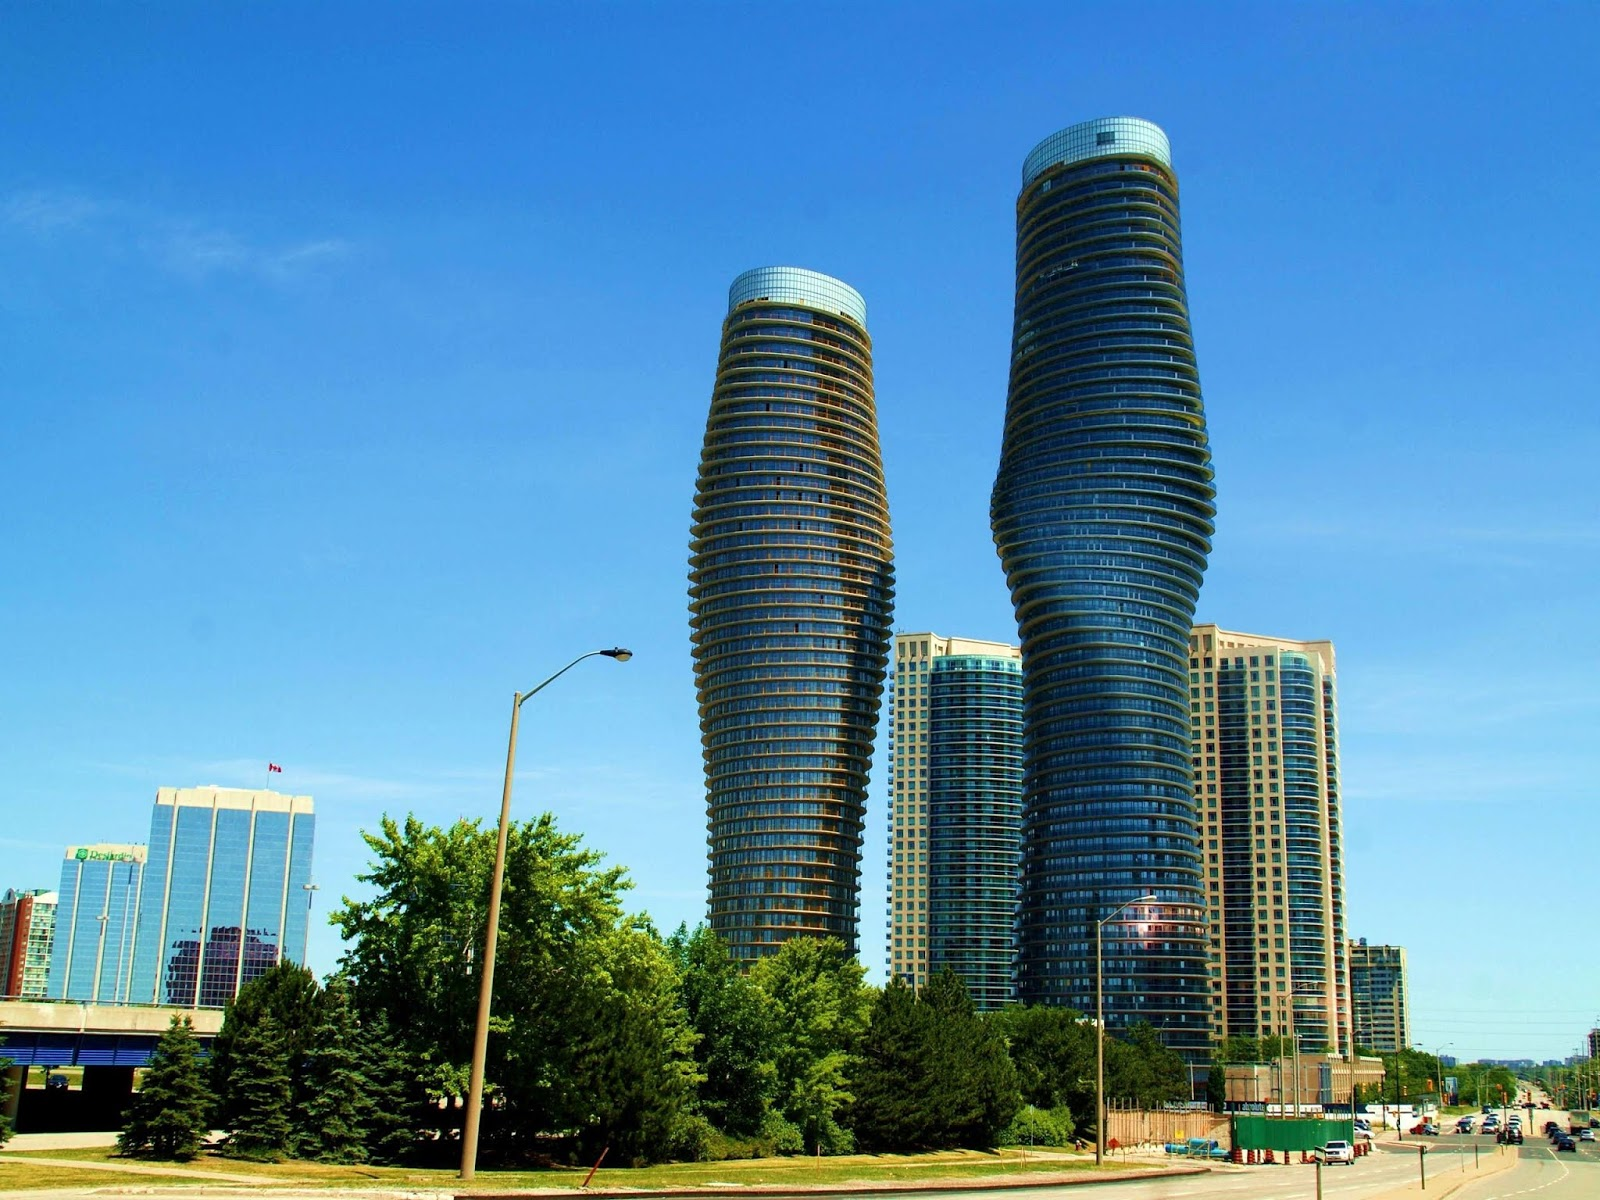 Mississauga, Ontario | Canadá